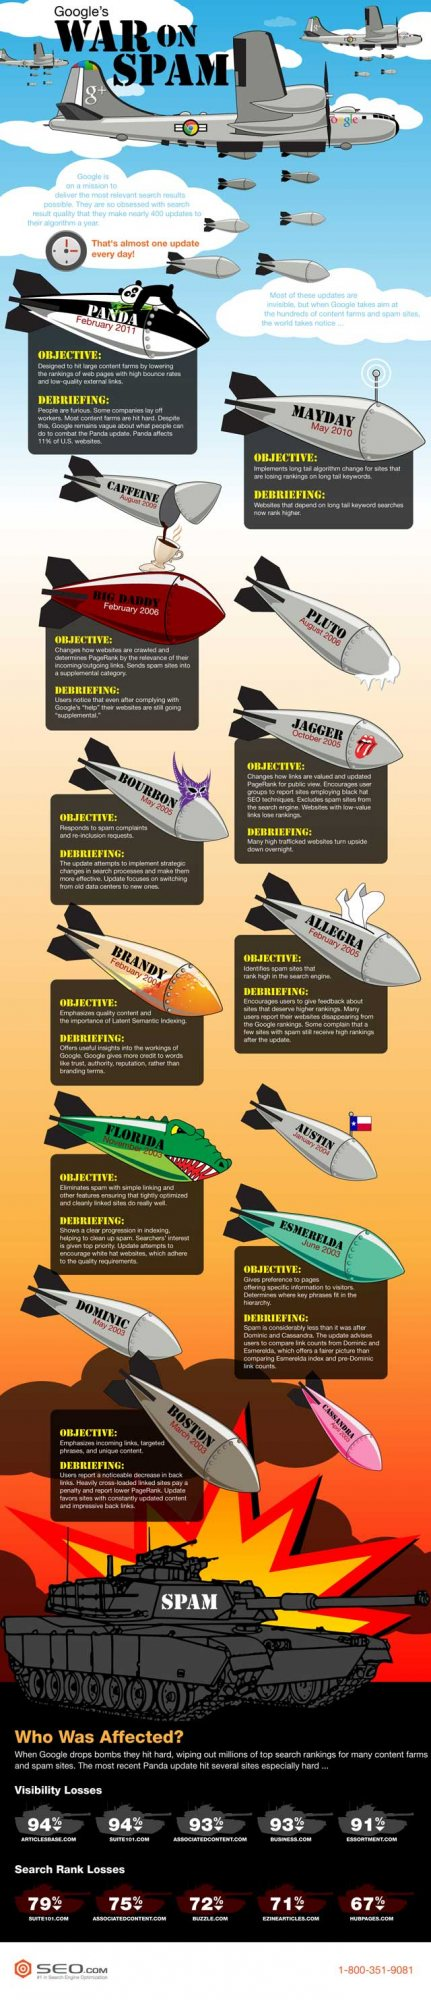 Google Spam War Infographic